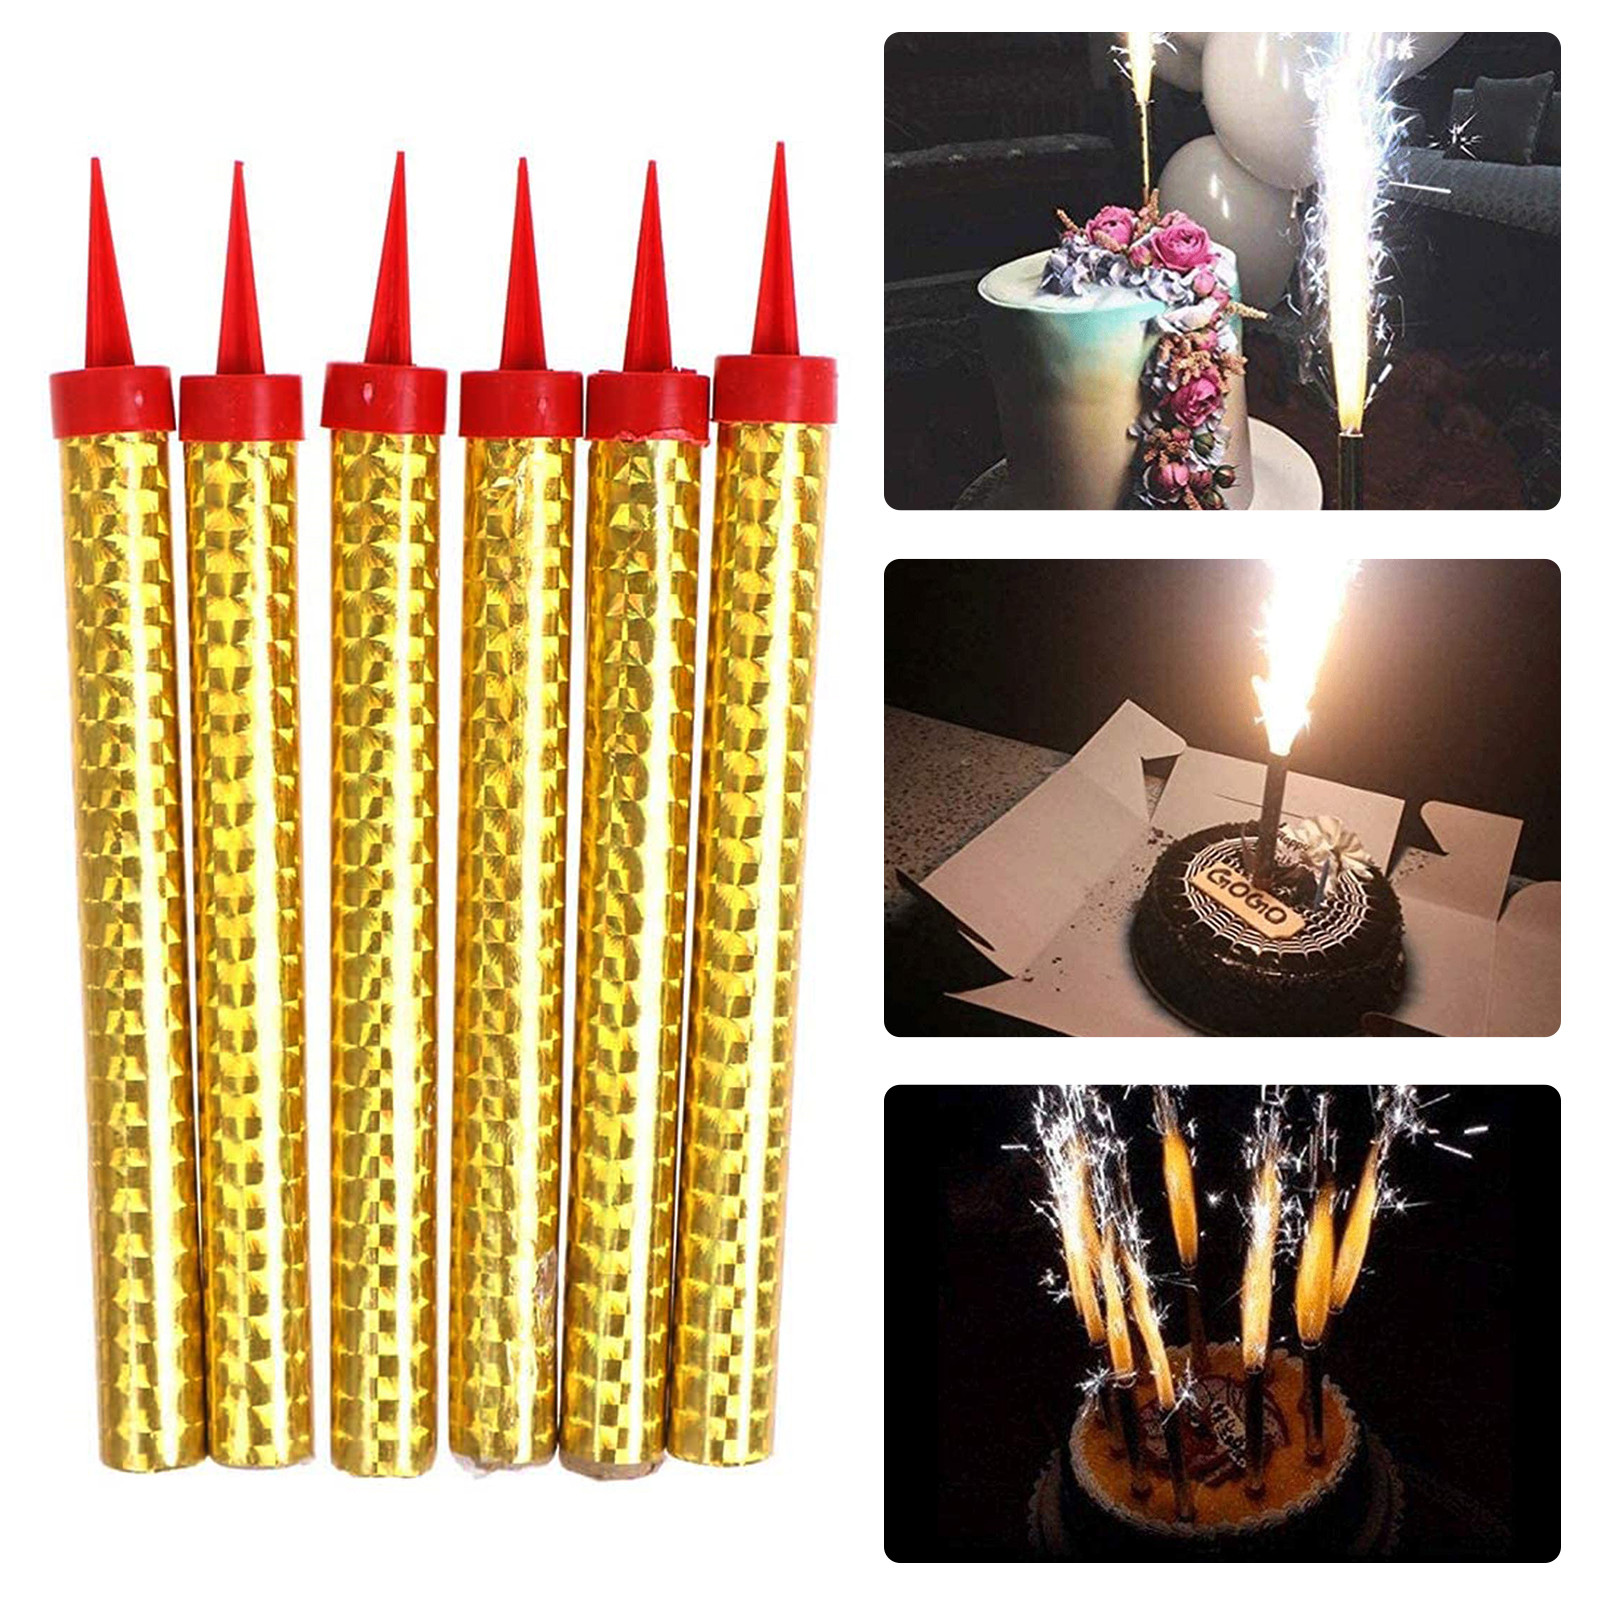 6 Pcs Birthday Candle Cake Decoration Wedding Party Nightclub Party Candle Accessories Fire-works Candles On The Cake Free Ship